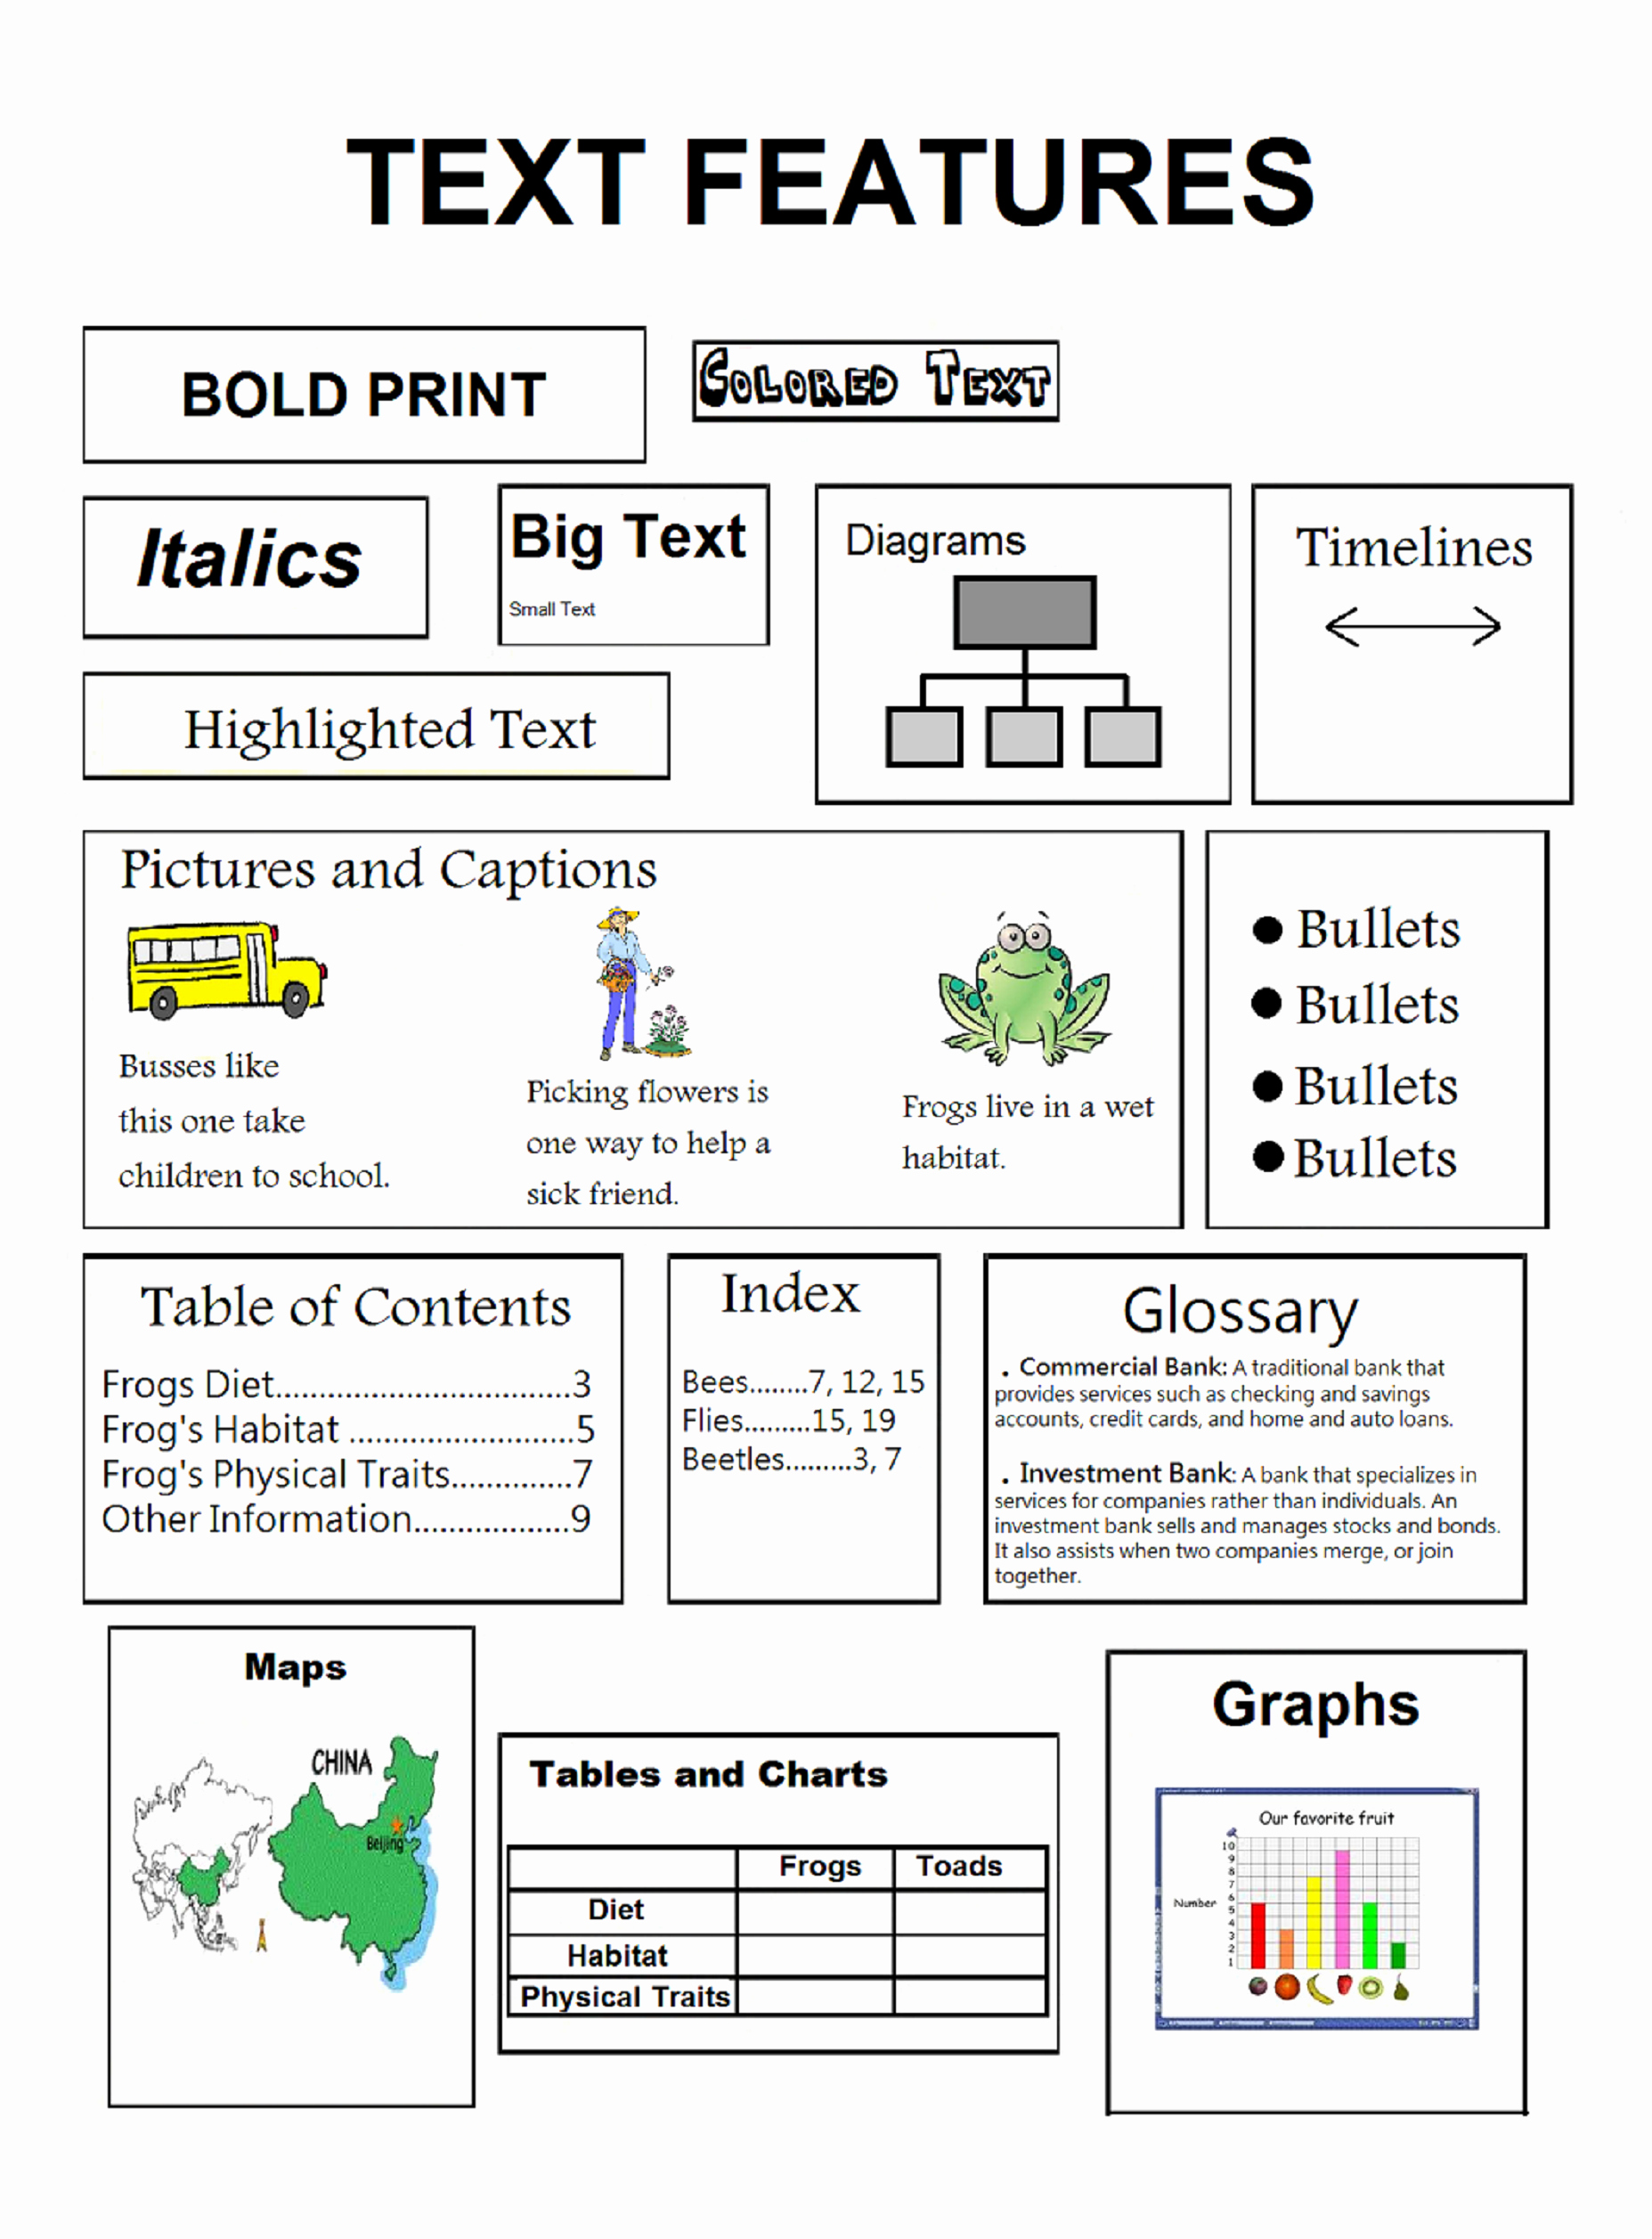 Text Features Worksheet 3rd Grade Lovely Printable Teaching Text Features 3rd Grade with Teaching